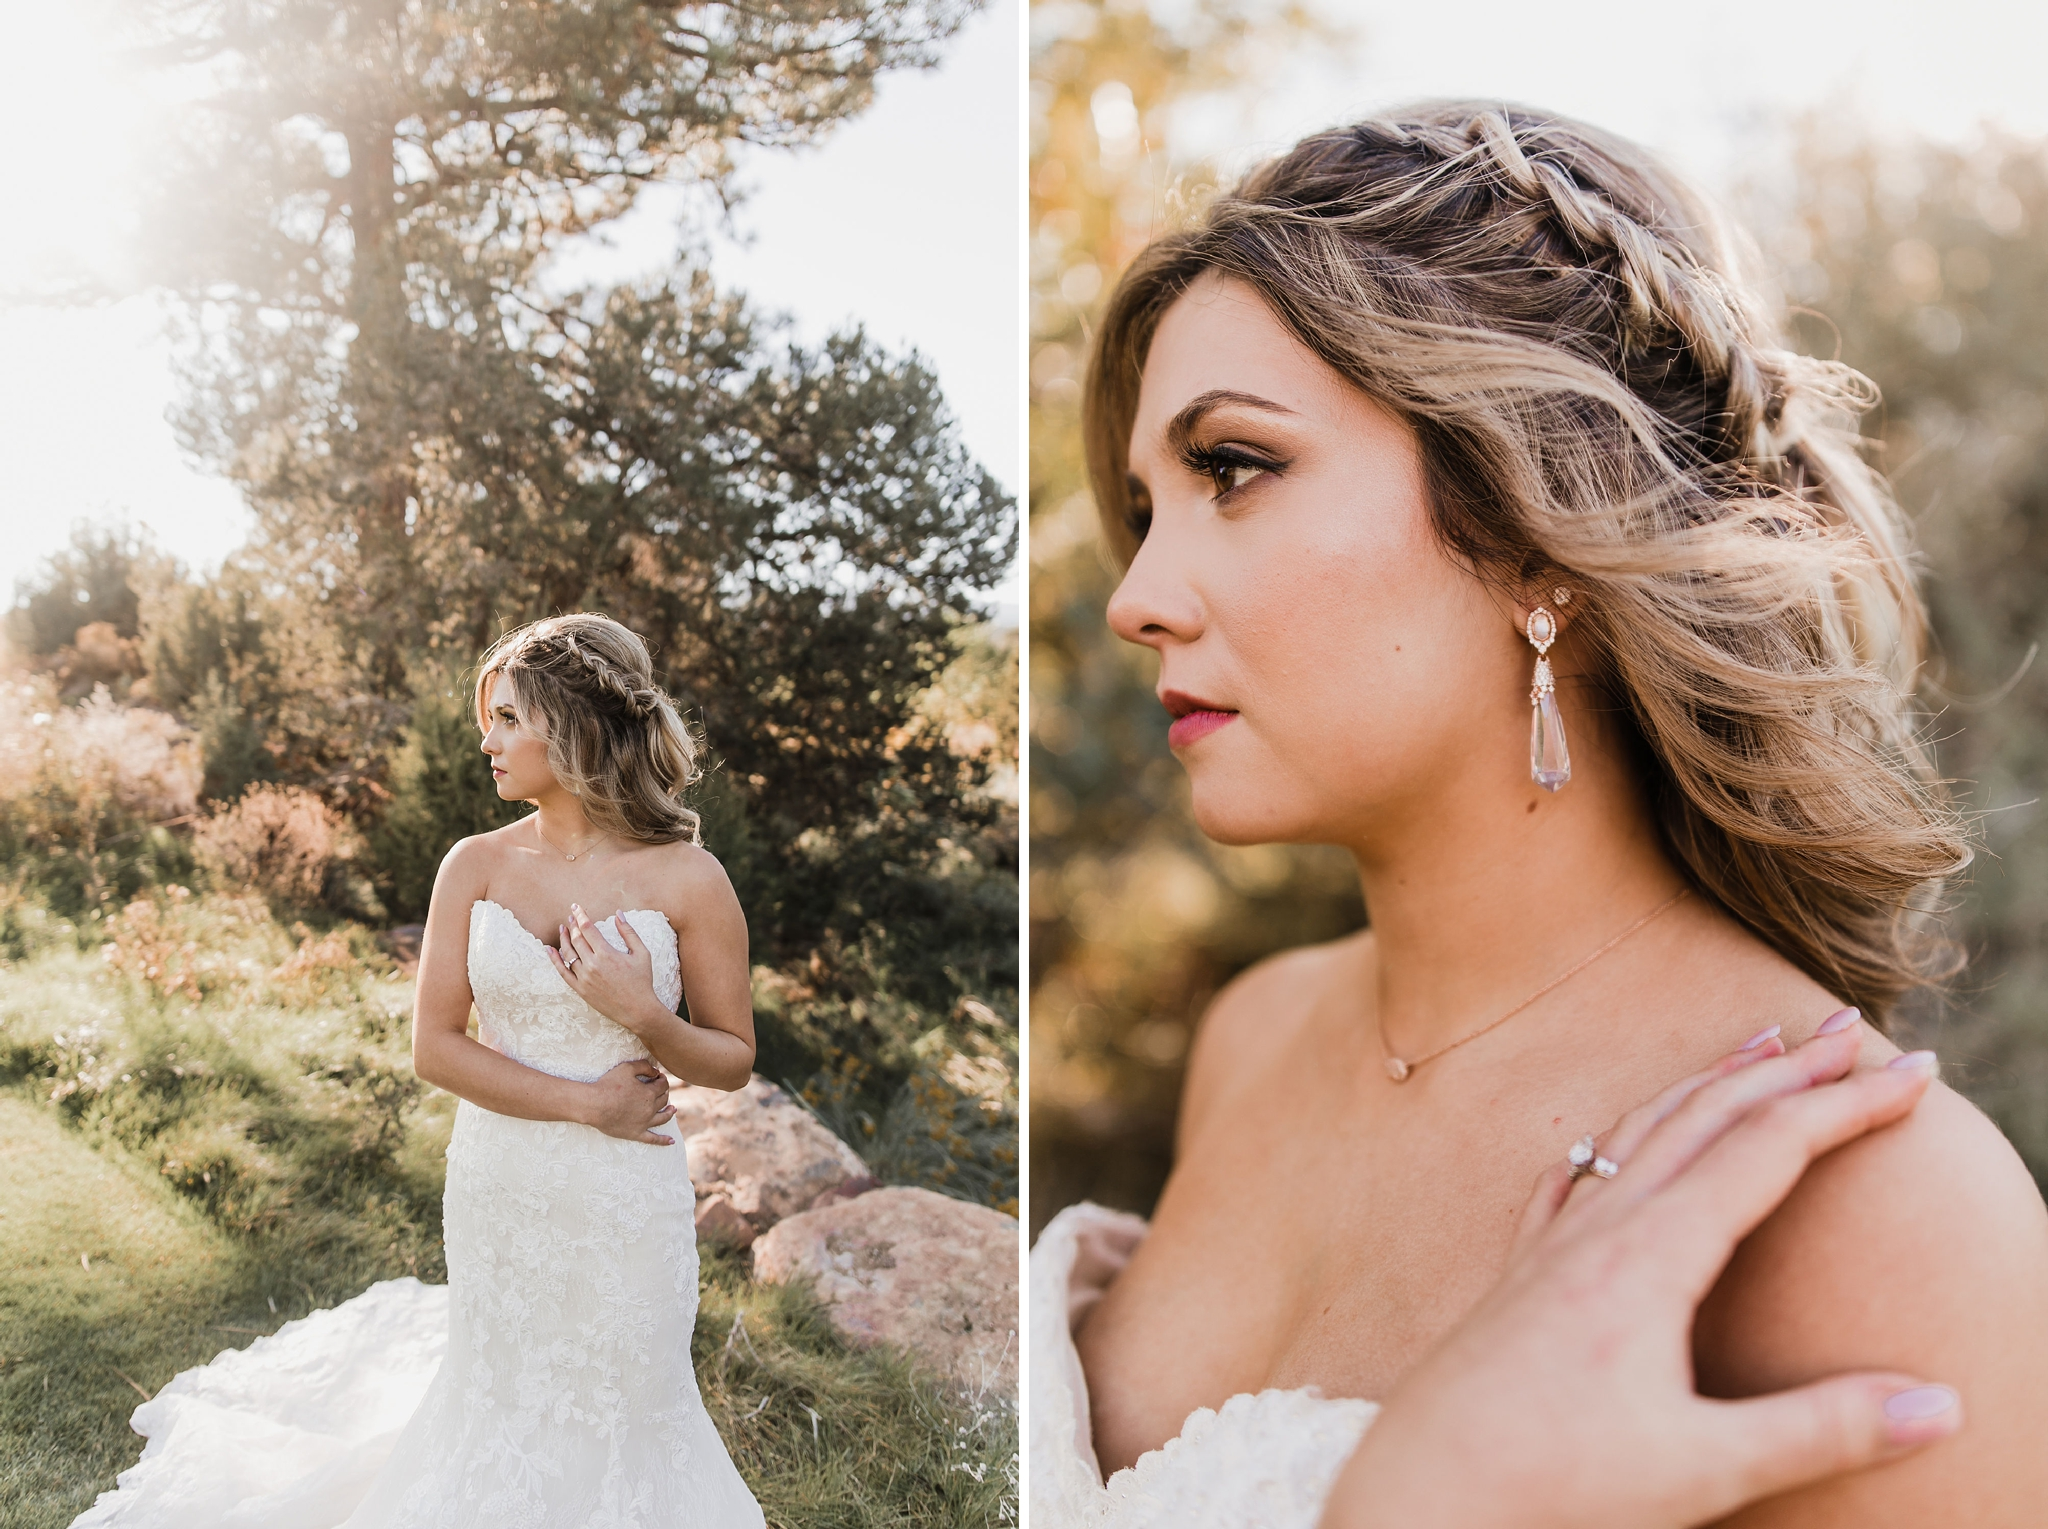 Alicia+lucia+photography+-+albuquerque+wedding+photographer+-+santa+fe+wedding+photography+-+new+mexico+wedding+photographer+-+new+mexico+wedding+-+wedding+makeup+-+makeup+artist+-+wedding+makeup+artist+-+bridal+makeup_0034.jpg